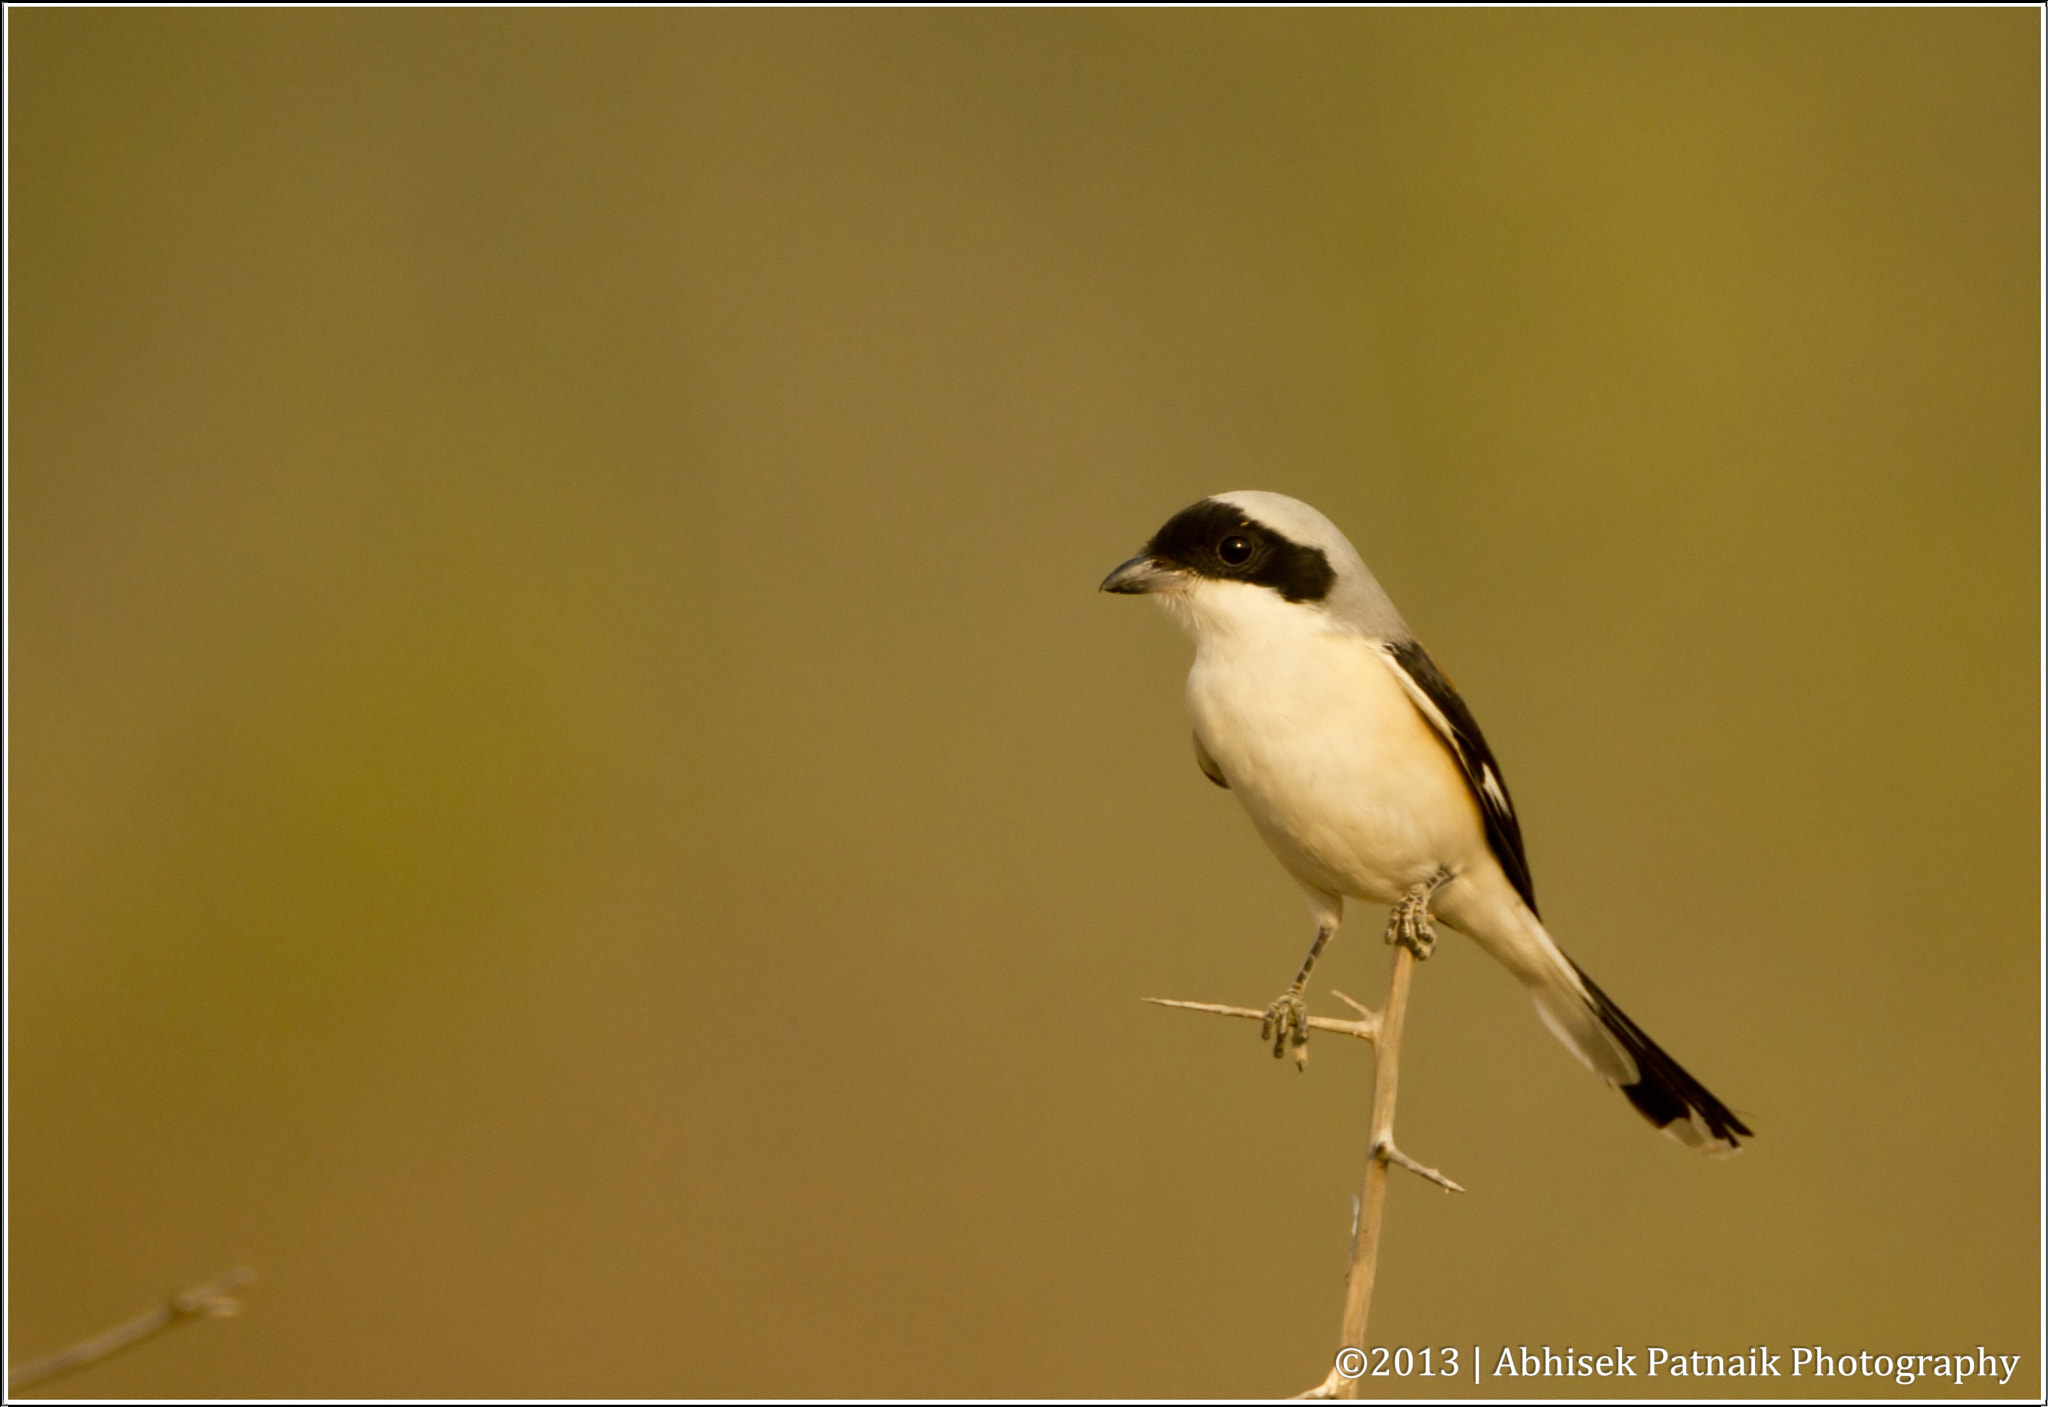 Photograph The Bay-backed Shrike (Lanius vittatus) by Abhisek Patnaik on 500px